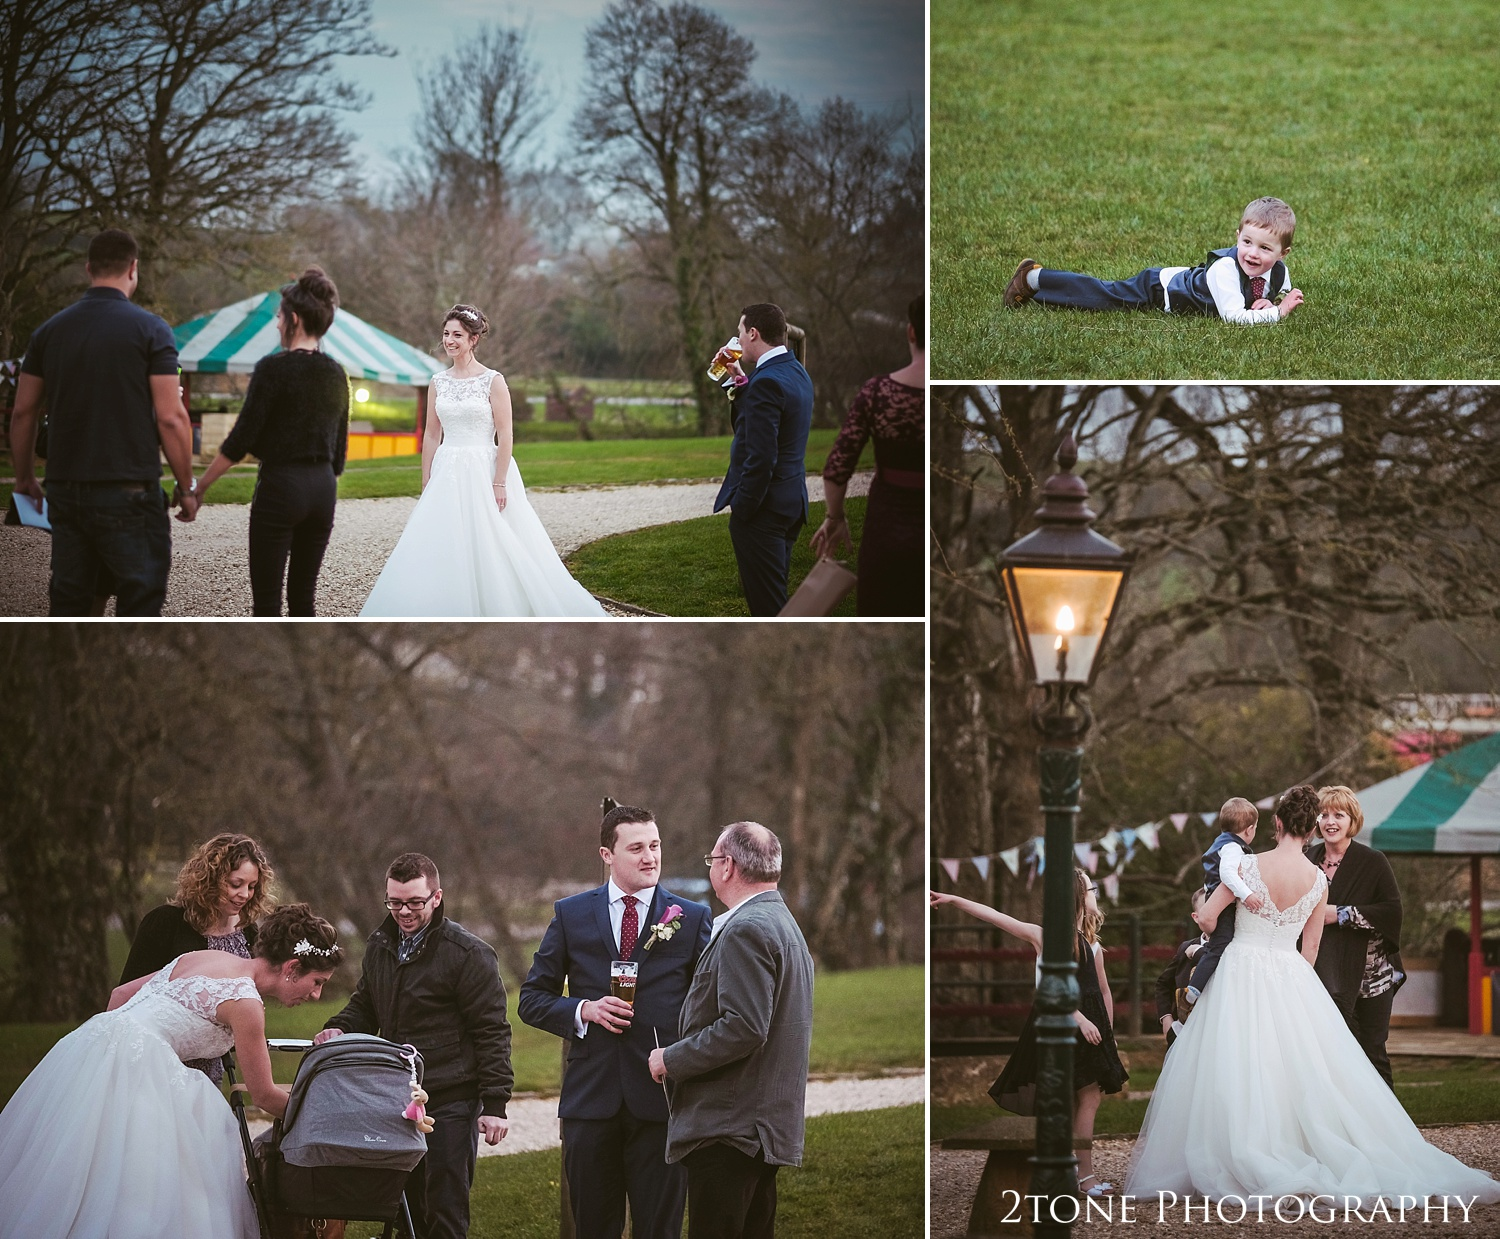 Weddings at Haselbury Mill and the Old Tythe Barn in Somerset by www.2tonephotography.co.uk